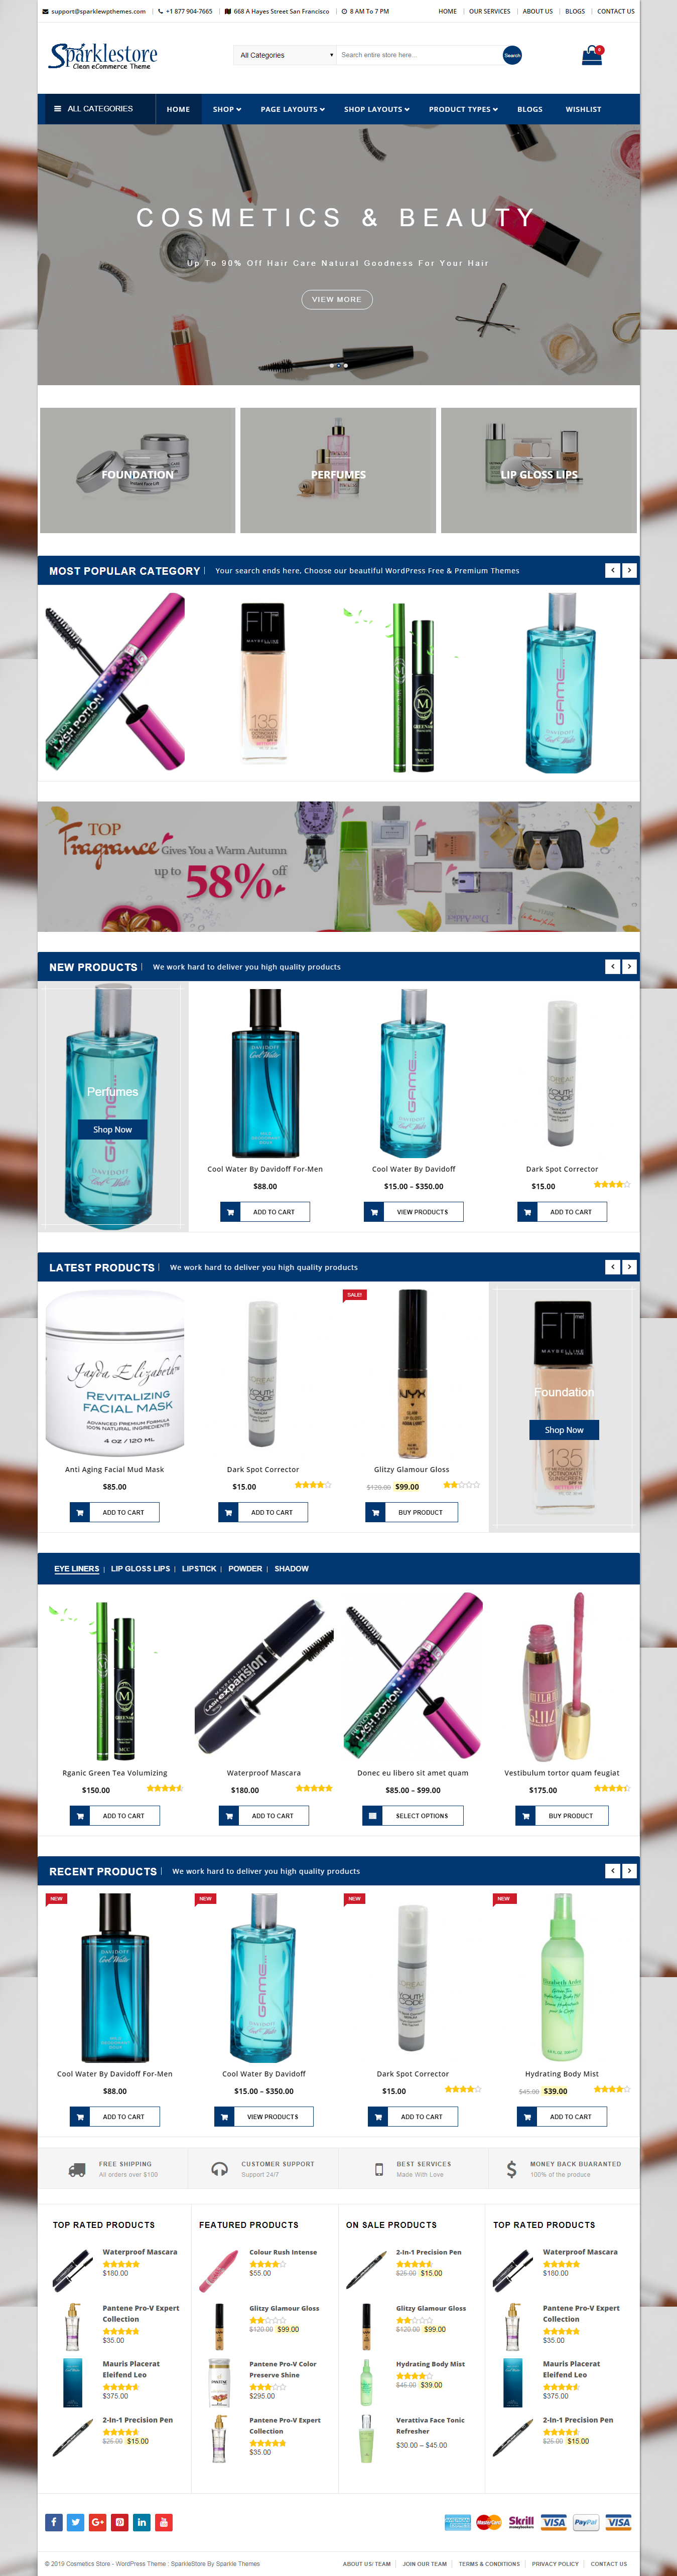 Sparklestore - Best Free Retail Shop WordPress Themes